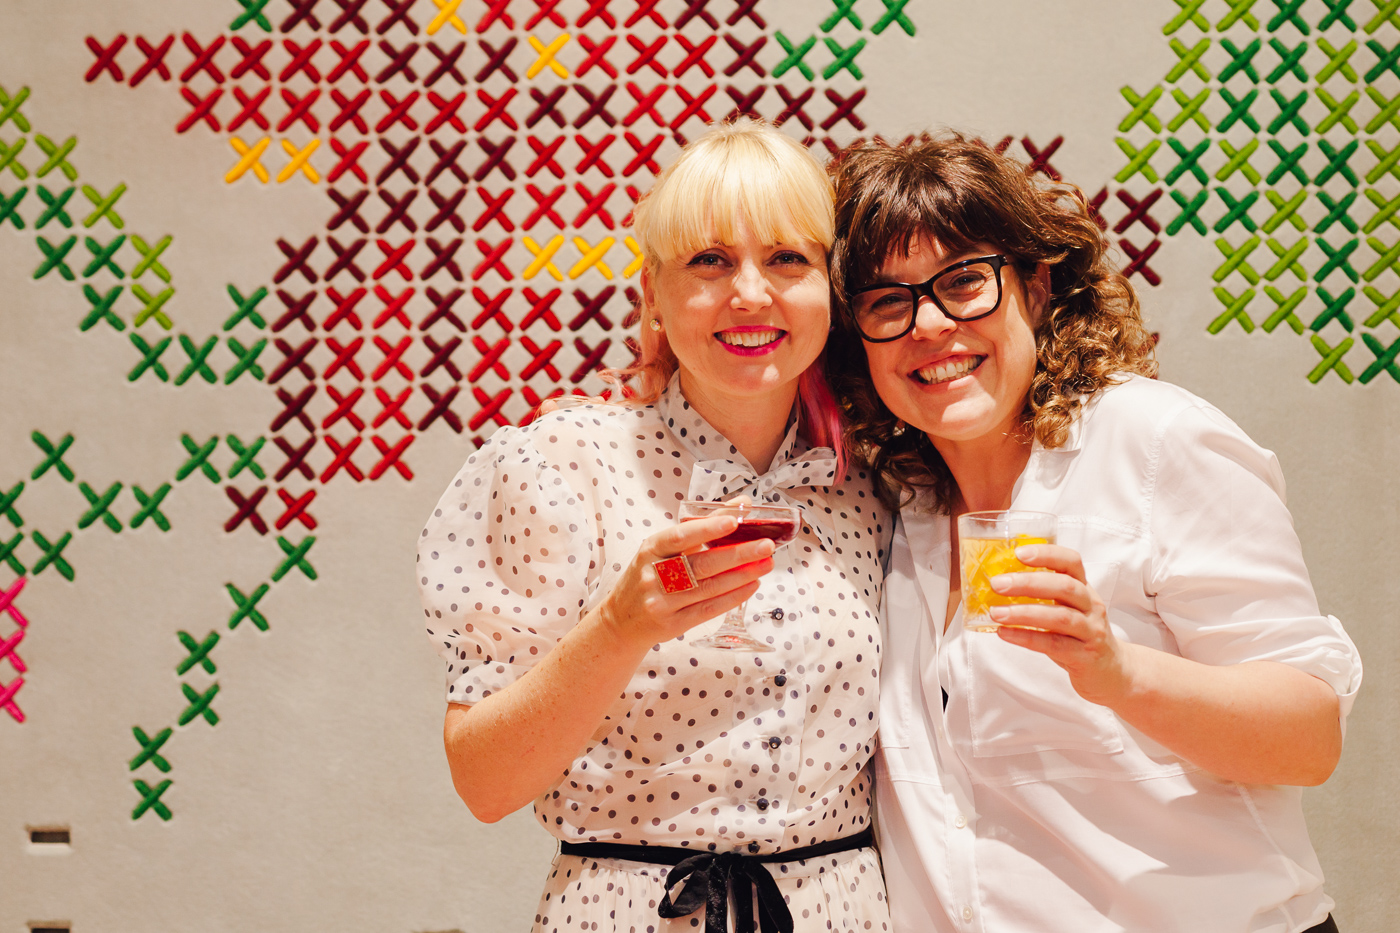 With Dara Shashoua | NEW AGAIN by Petrina Turner Design for Designer Rugs | The launch event